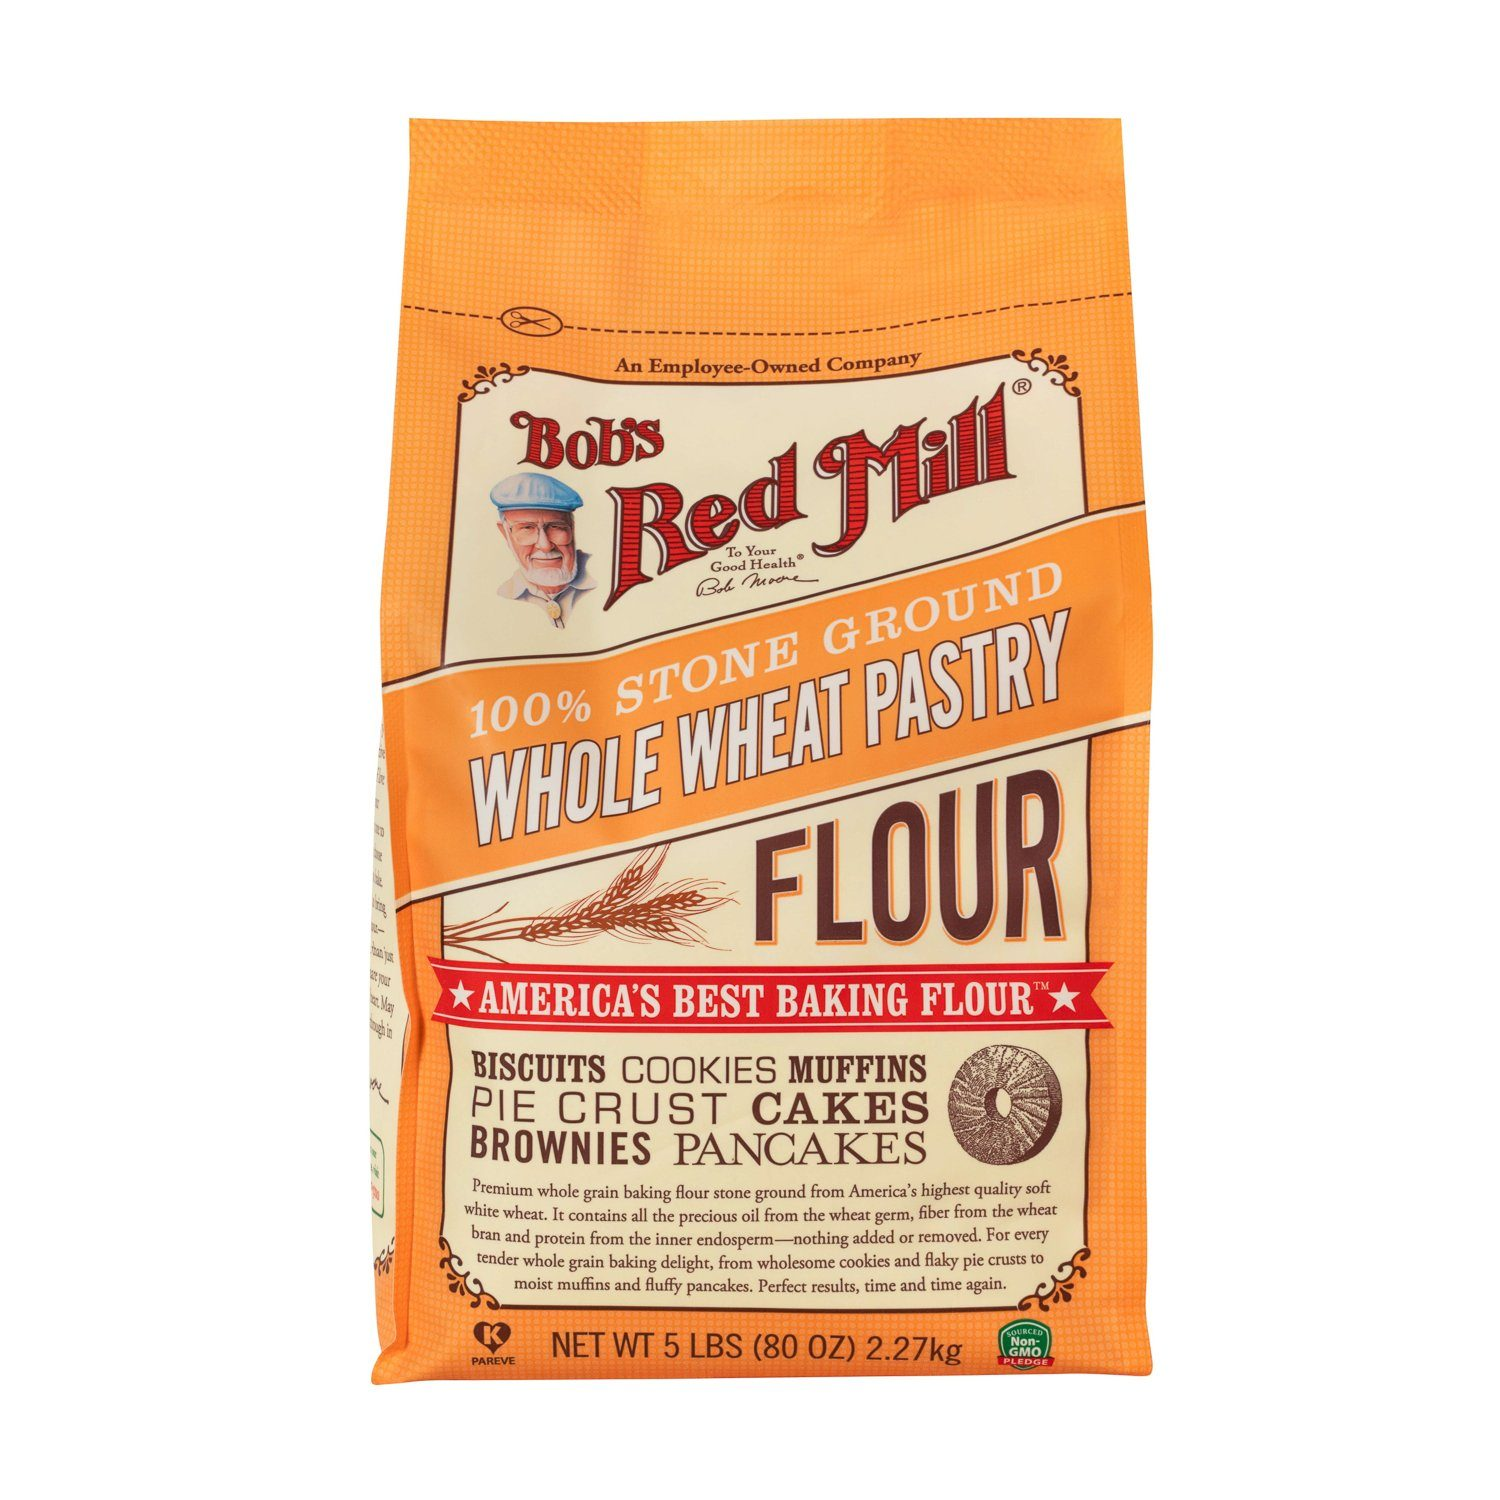 Bob's Red Mill Pastry Flour Bob's Red Mill Whole Wheat 5 Pound